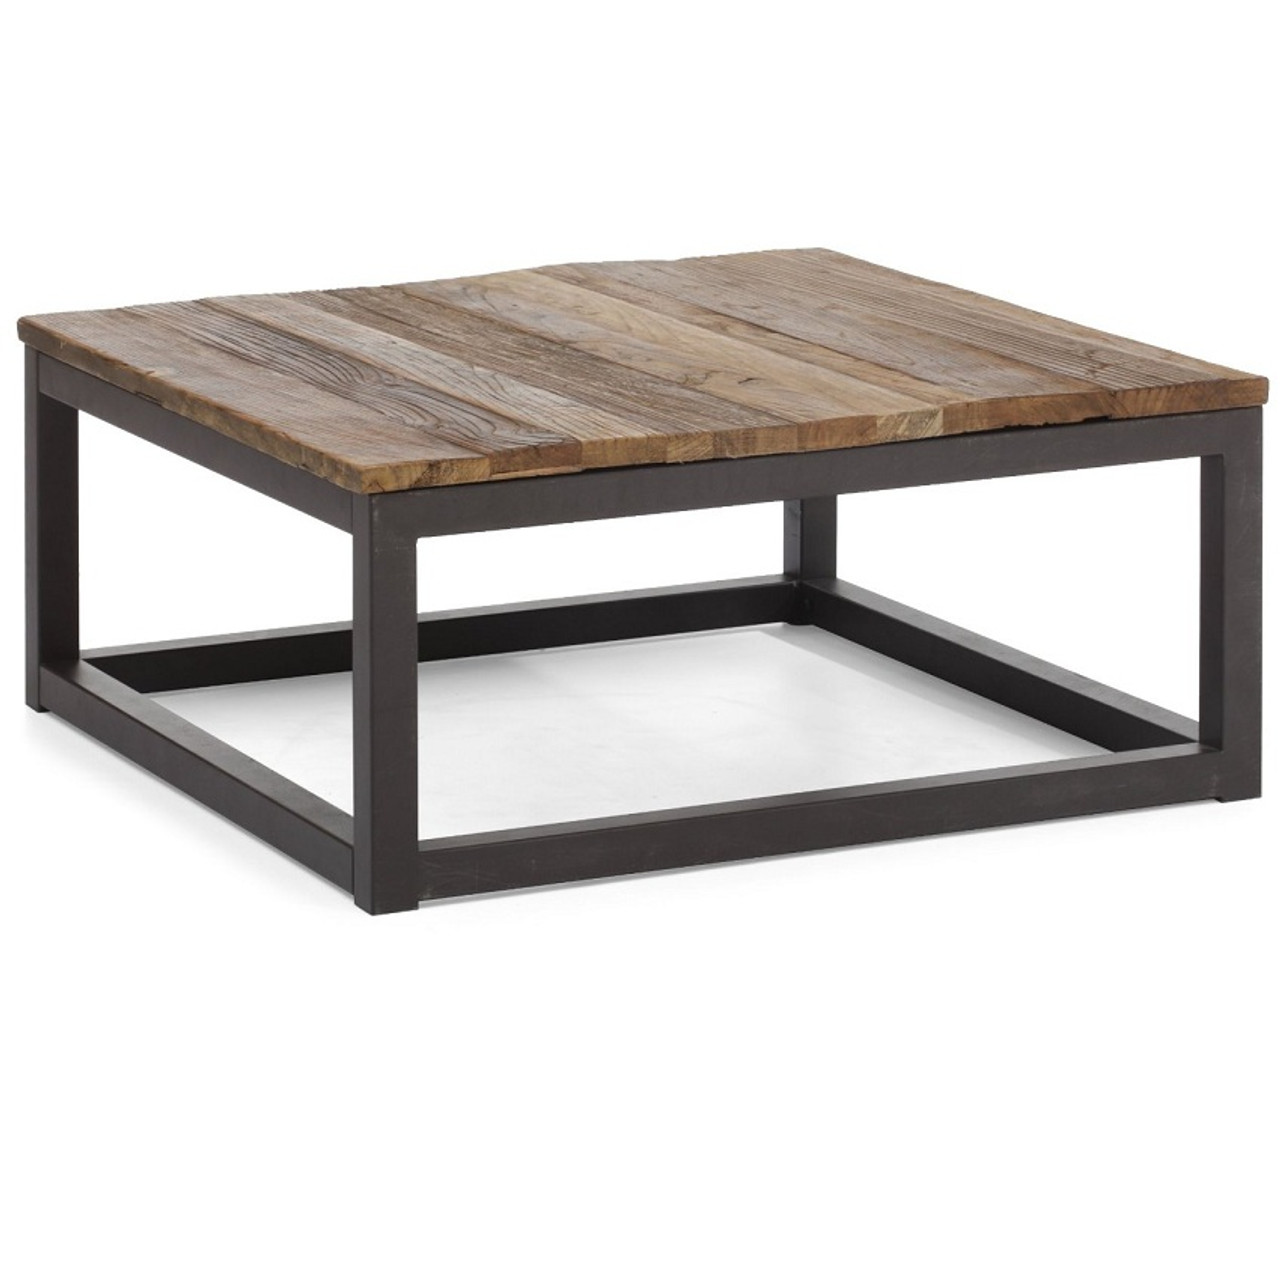 Civic wood and metal square coffee table zin home for Large wood coffee table square